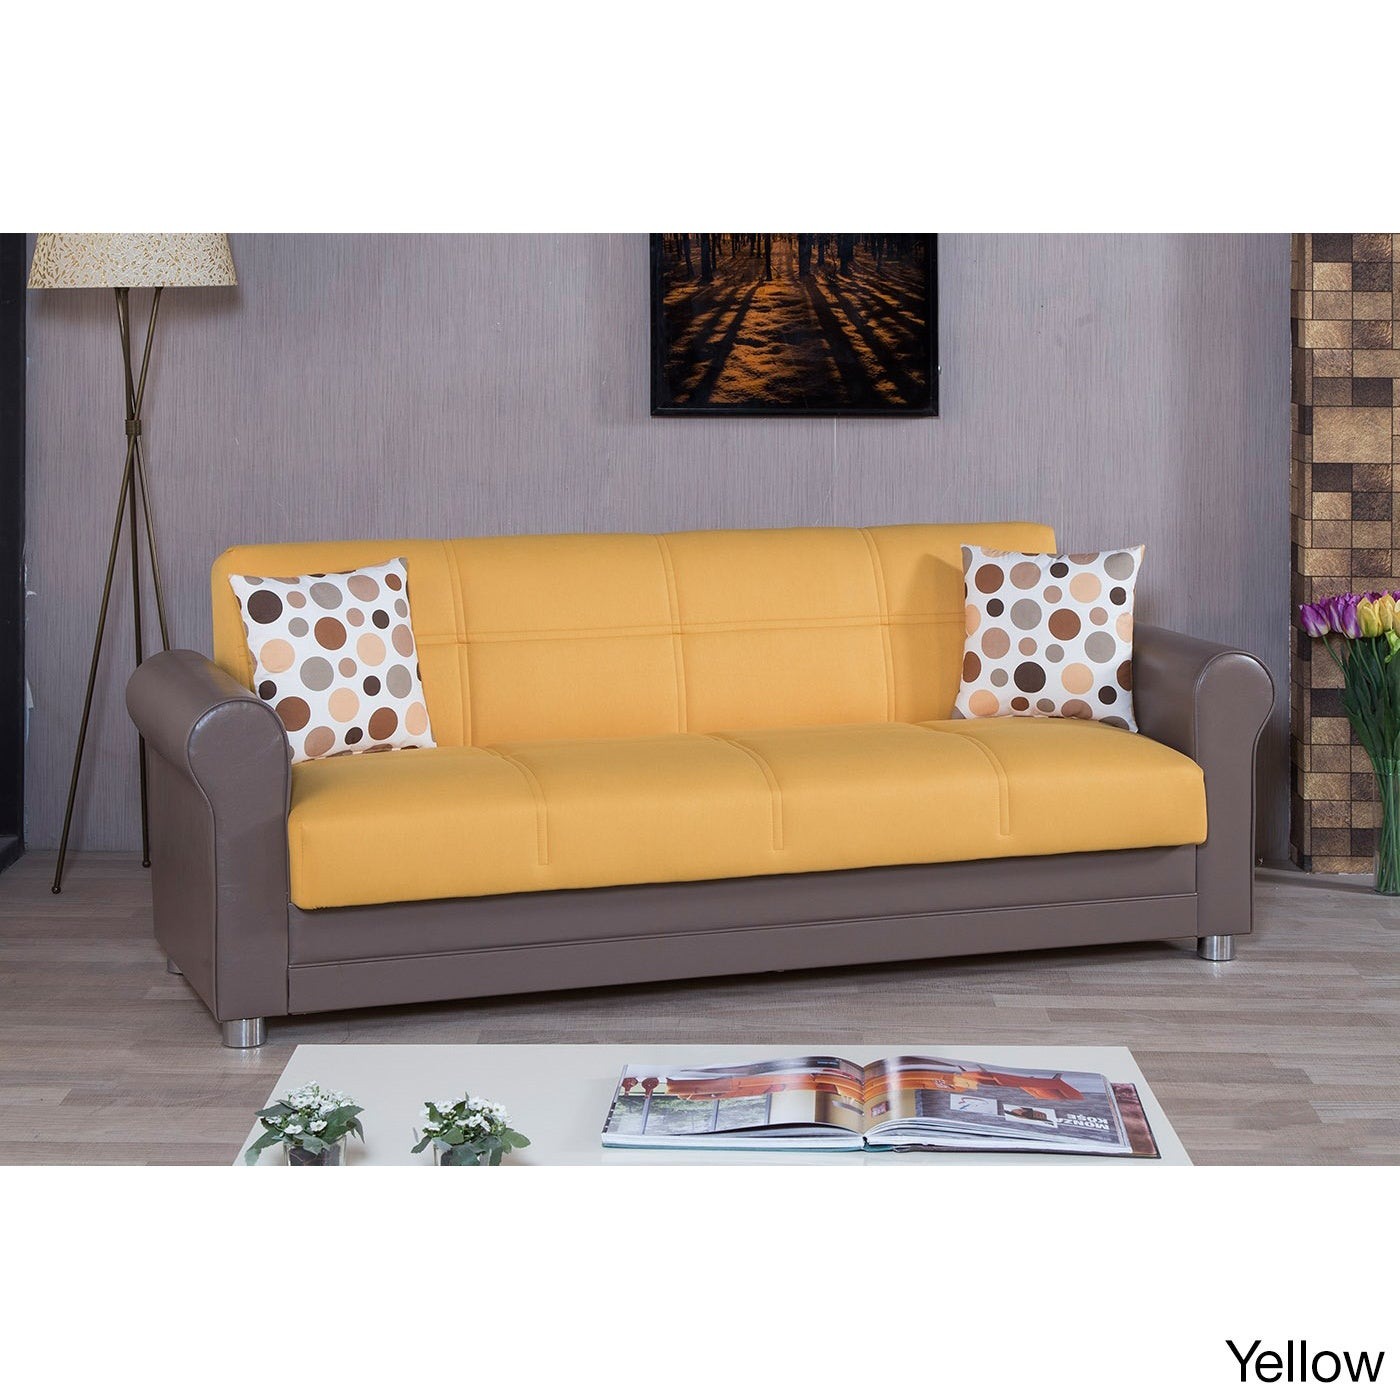 Avalon Futon Convertible Sleeper Sofa Bed Free Shipping Today